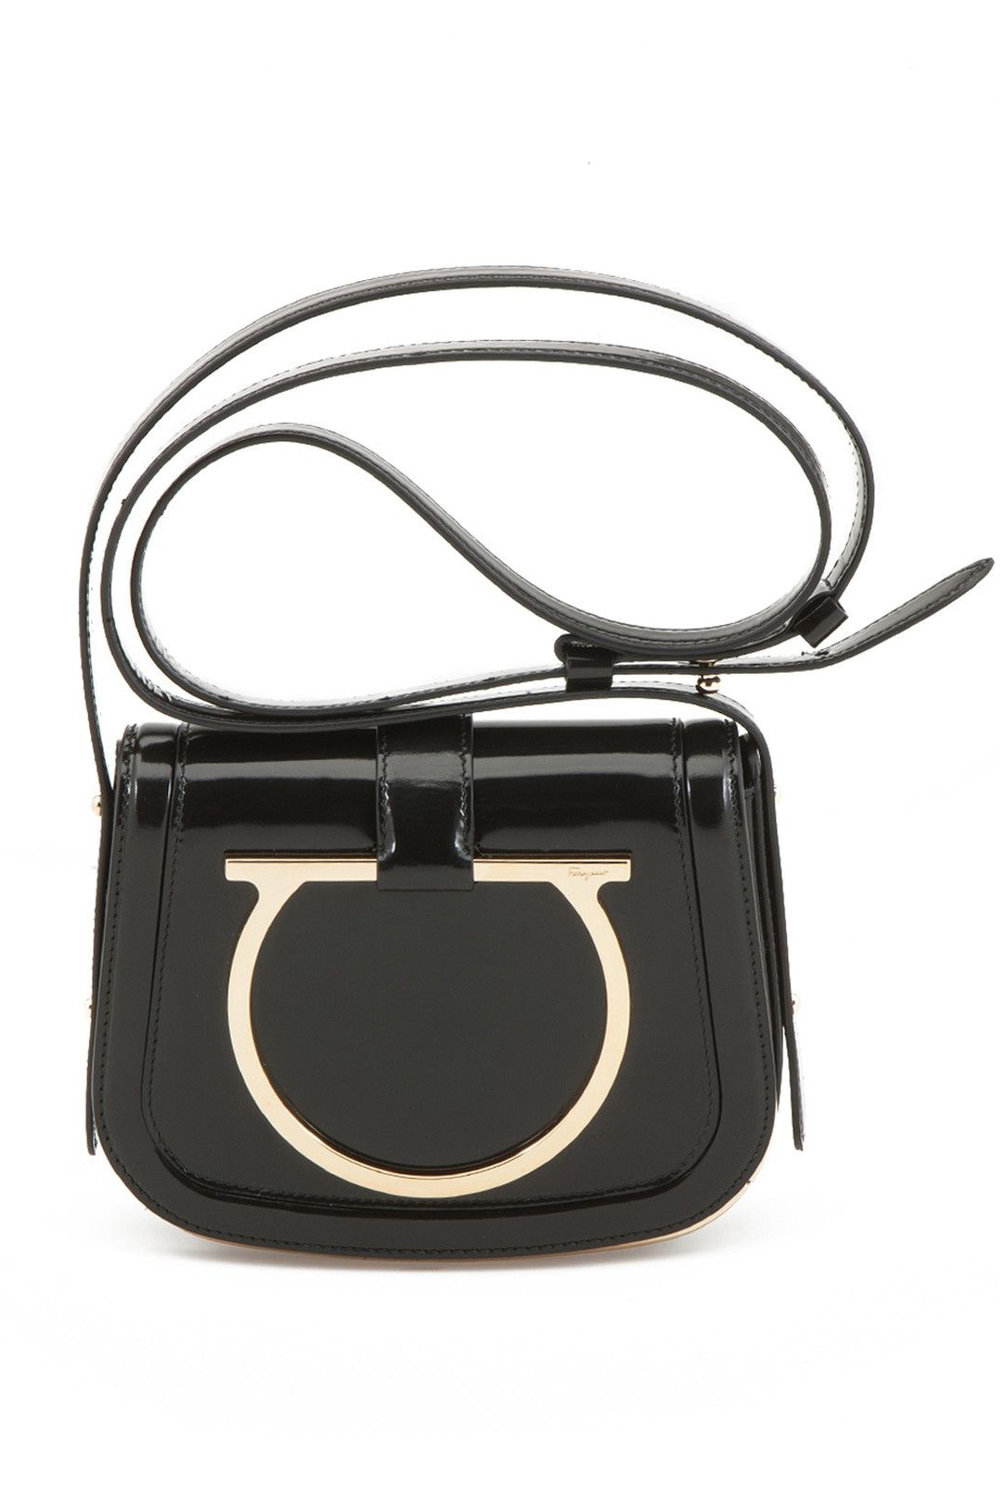 Salvatore Ferragamo Patent Leather Crossbody Bag